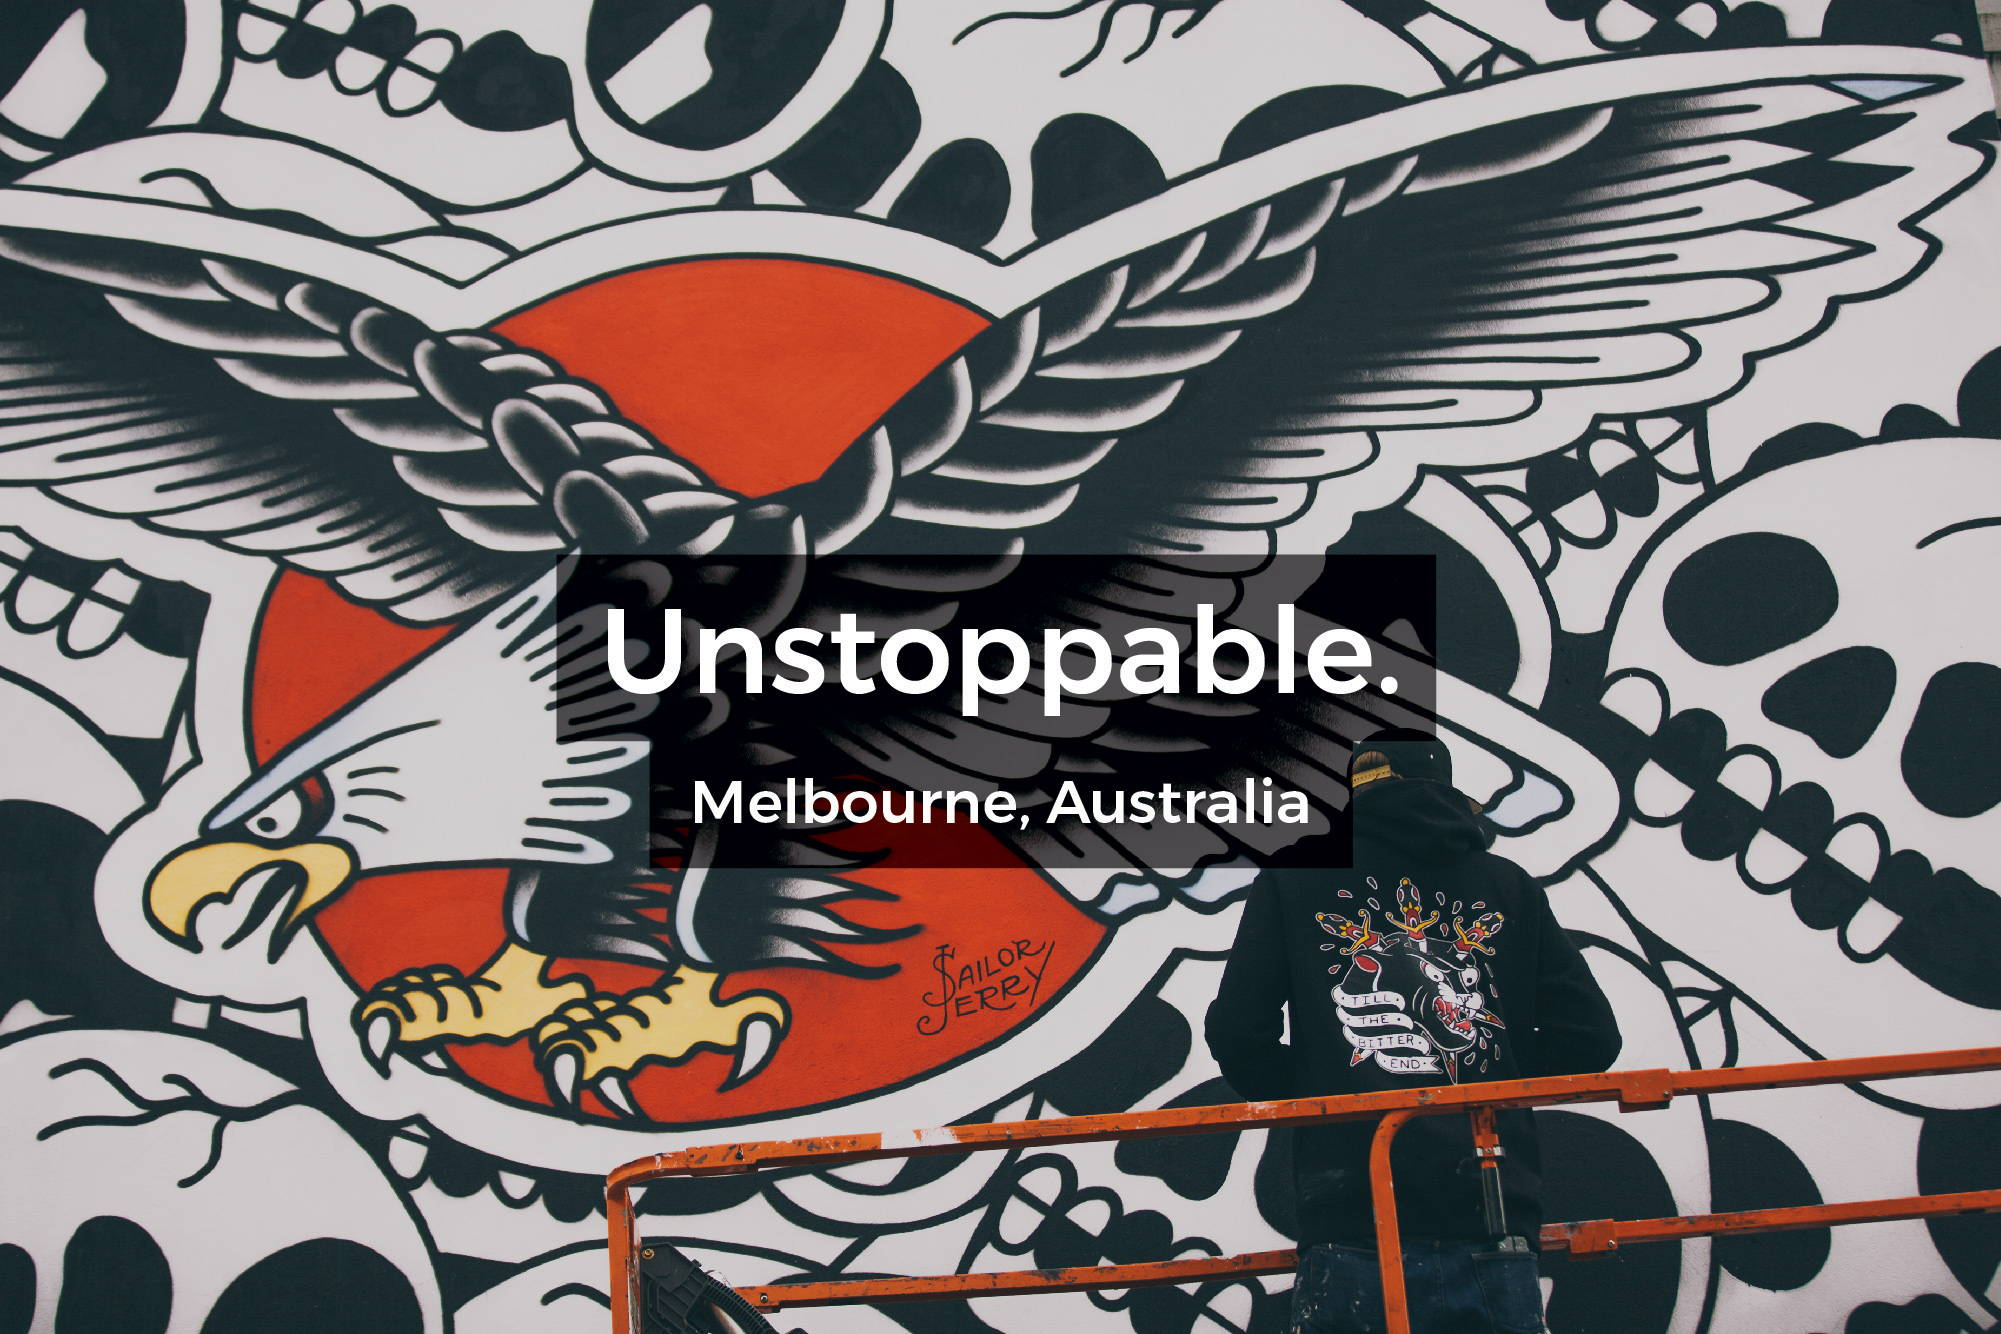 Unstoppable mural in Melbourne, Australia by Steen Jones for Sailor Jerry